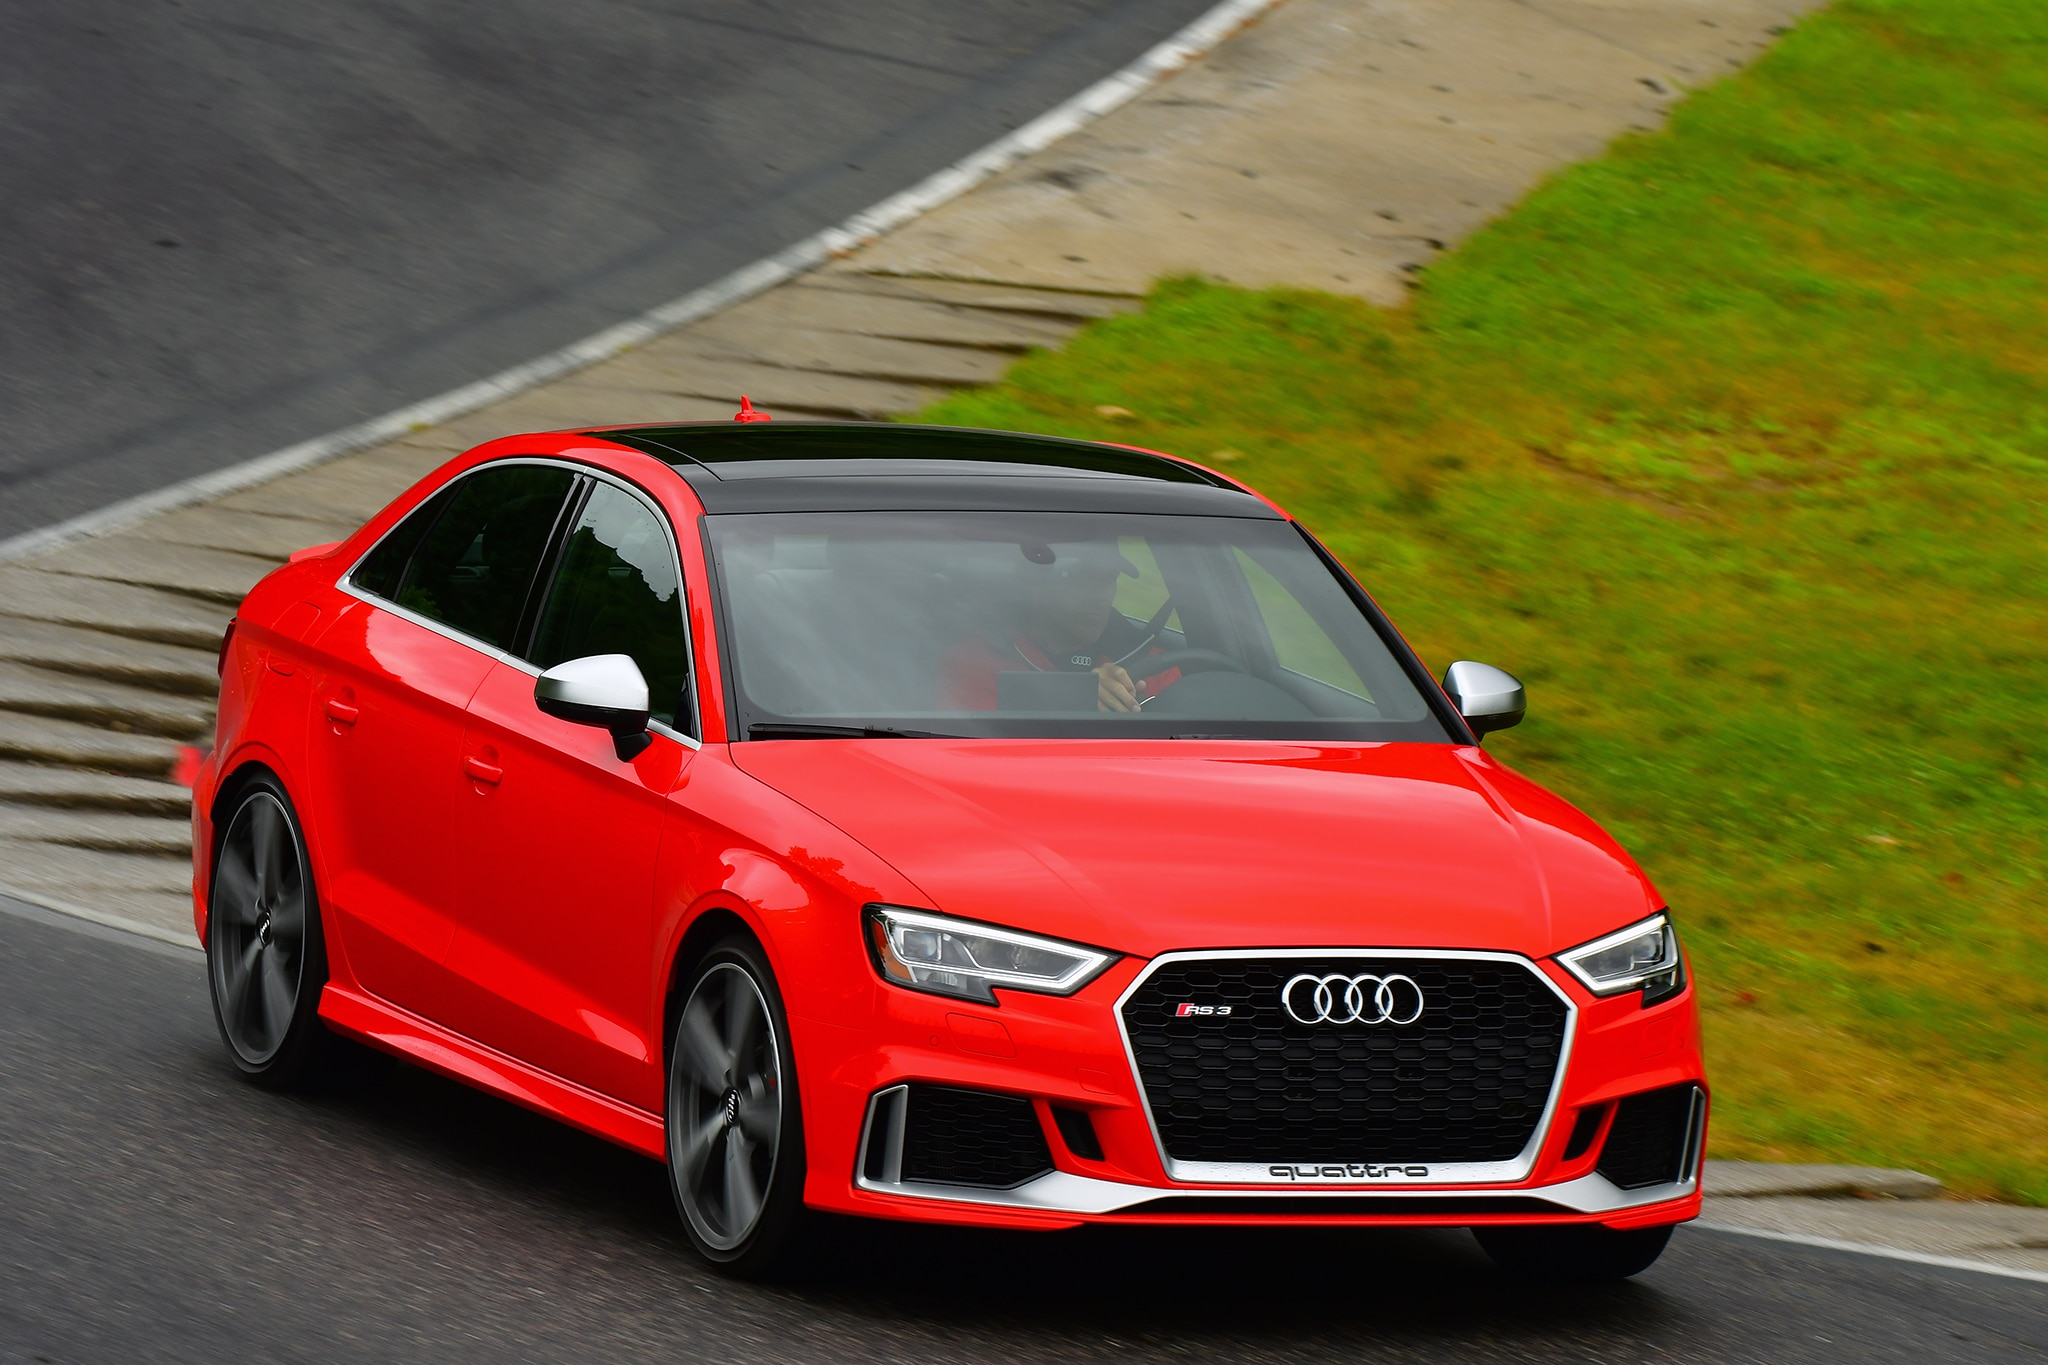 2018 Audi Rs3 First Drive Review Automobile Magazine